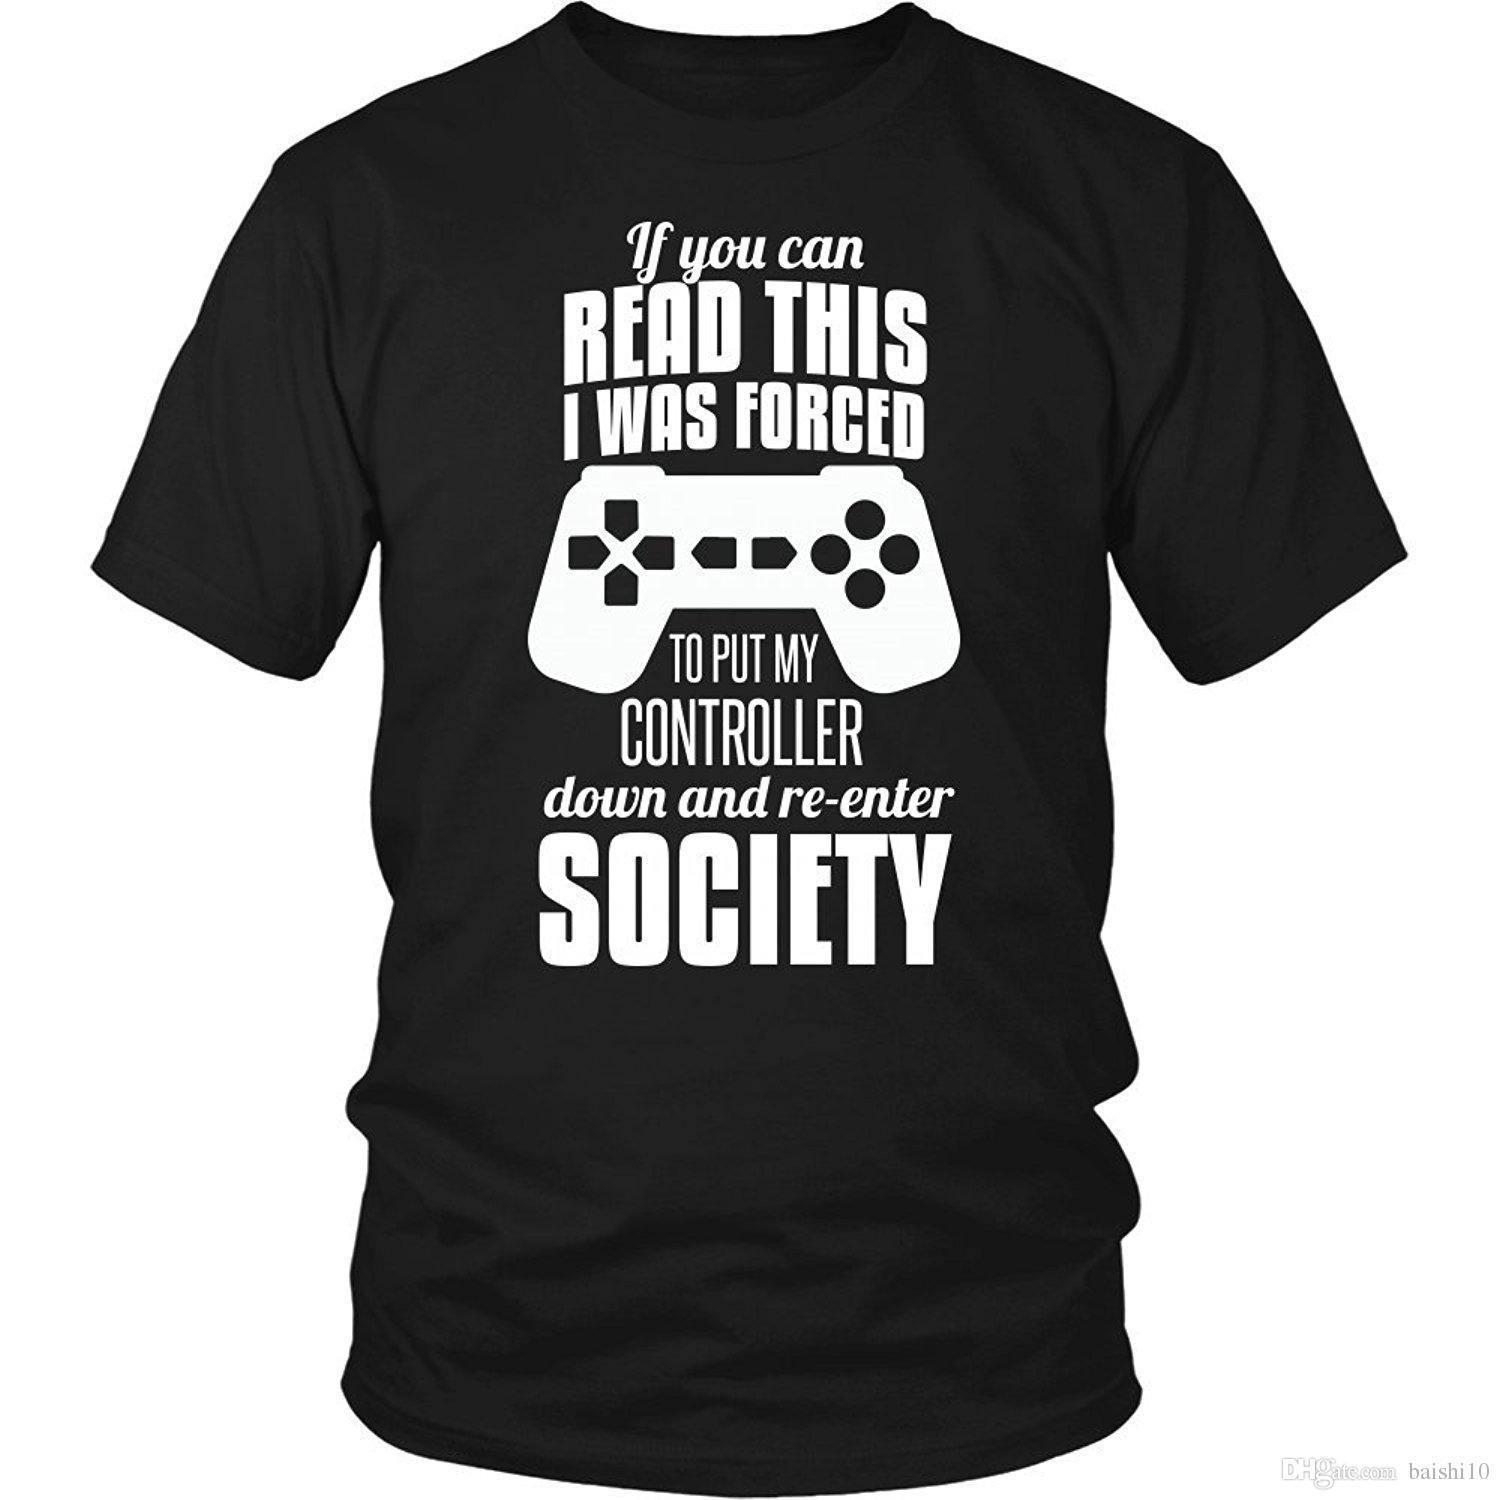 e7afe9f383180c If You Can Read This Gaming T Shirt Short Sleeve Discount 100 % Cotton T  Shirts Cotton Shirts Cheap Wholesale Top Tee Awesome Cheap T Shirts Online  Shopping ...